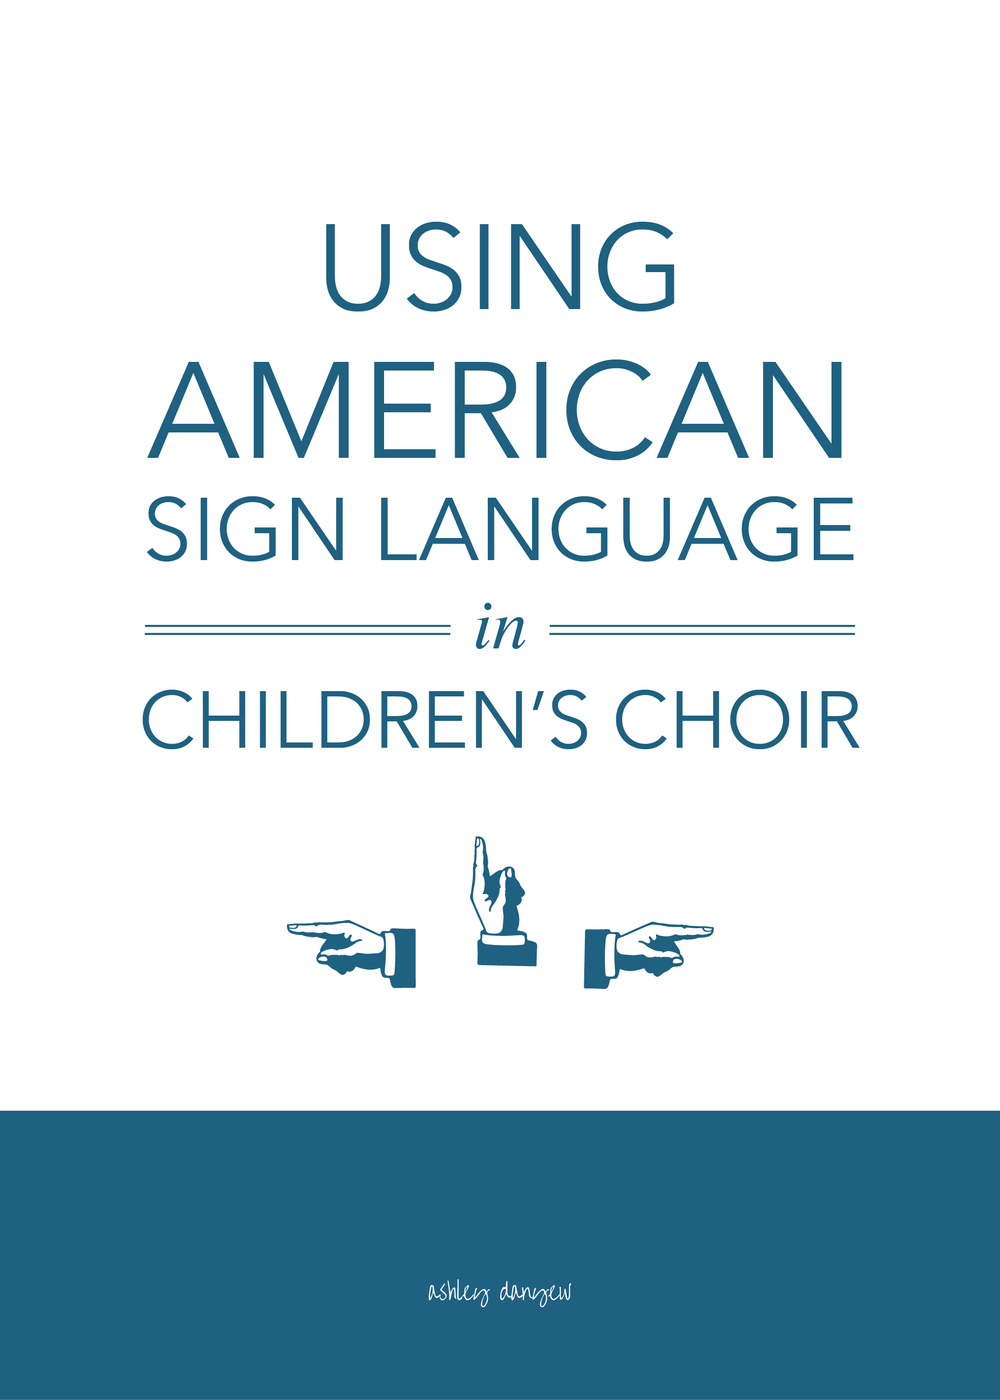 Using-American-Sign-Language-in-Childrens-Choir-01.png